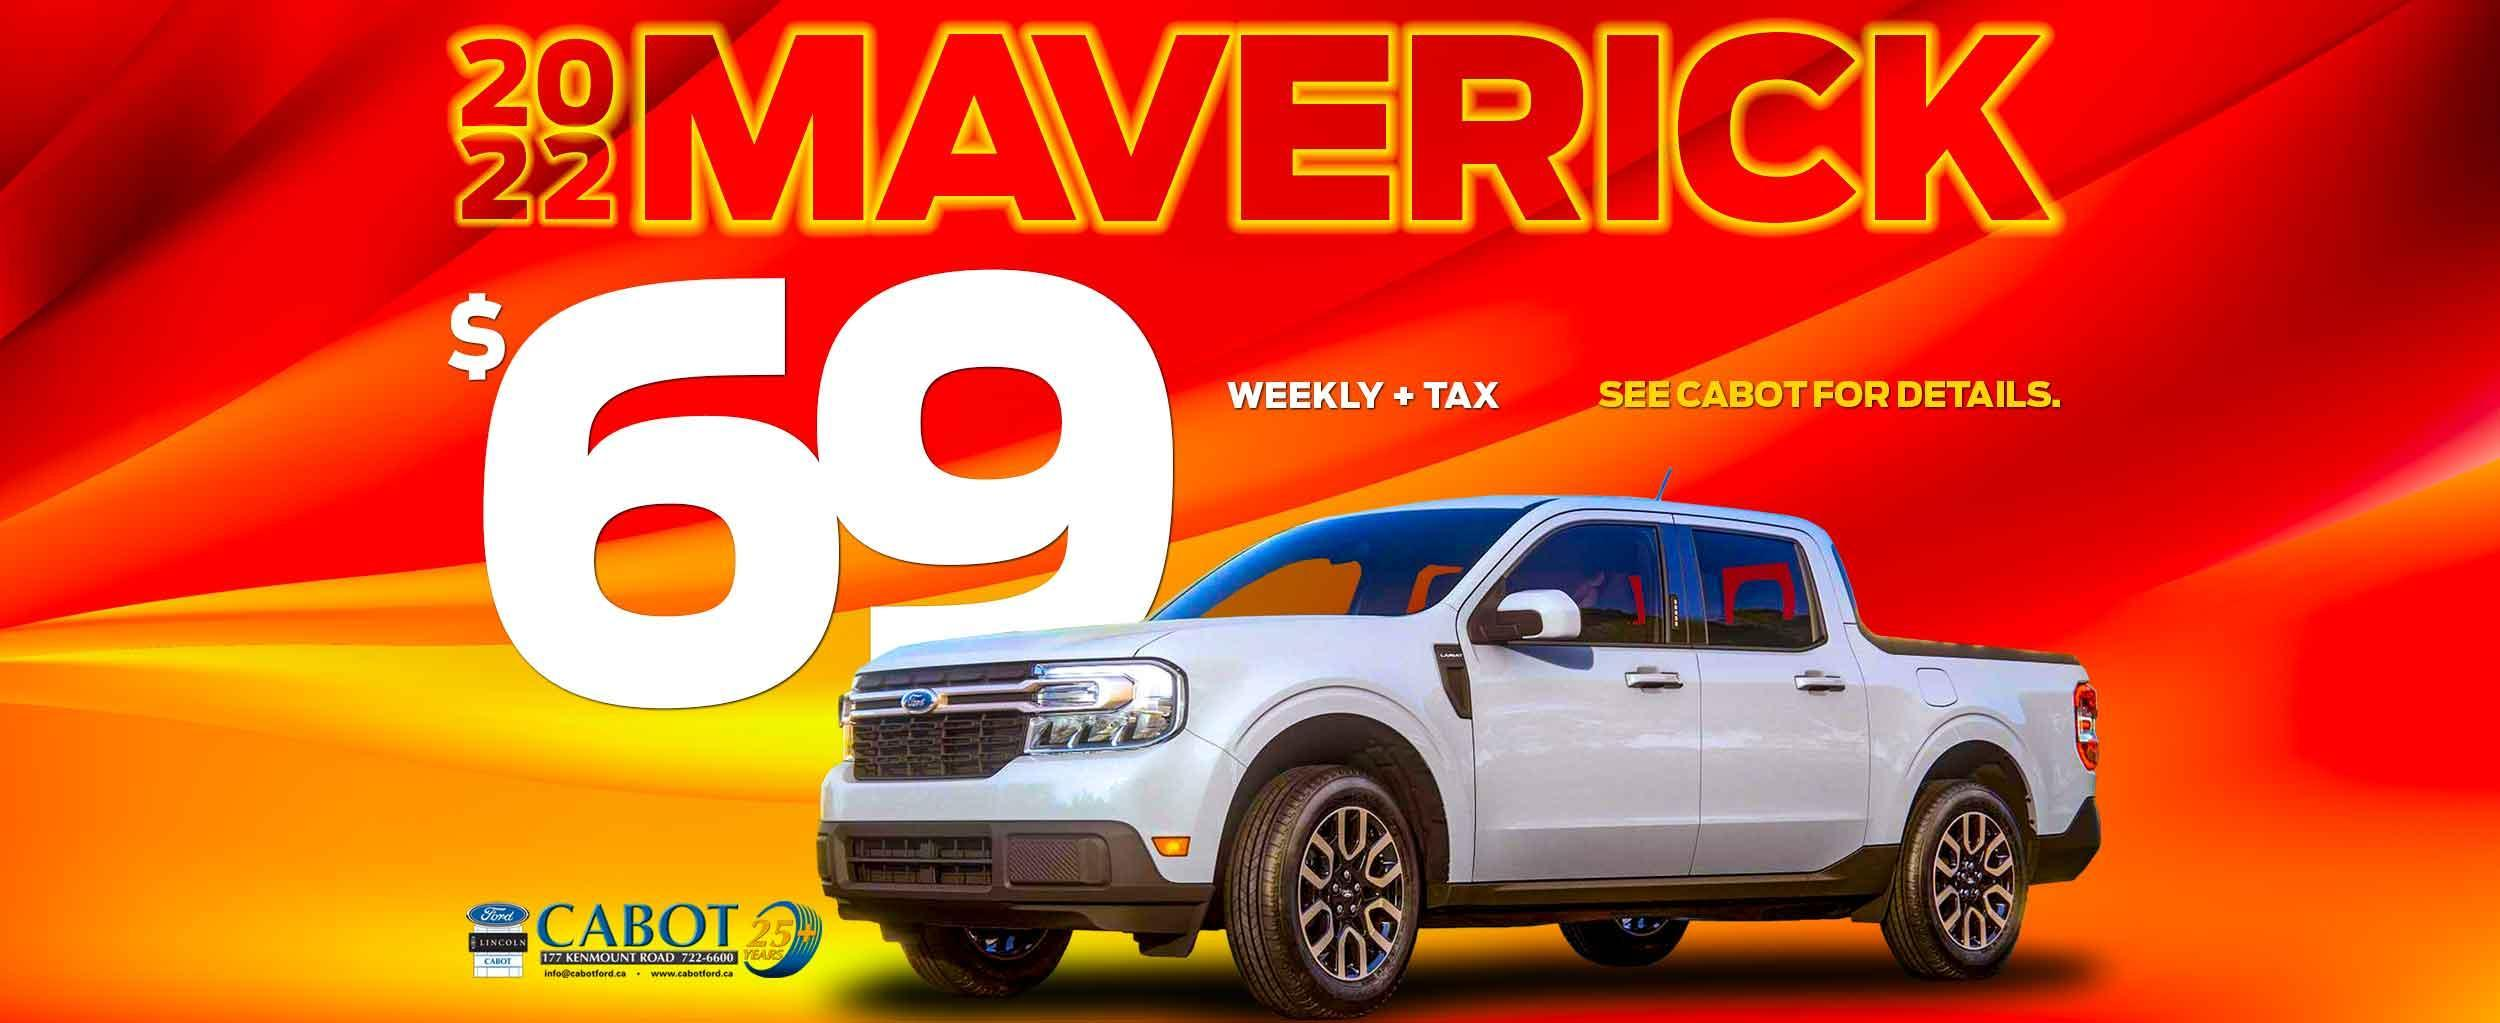 JUST $69 WEEKLY + TAX FOR THE ALL-NEW 2022 FORD MAVERICK!